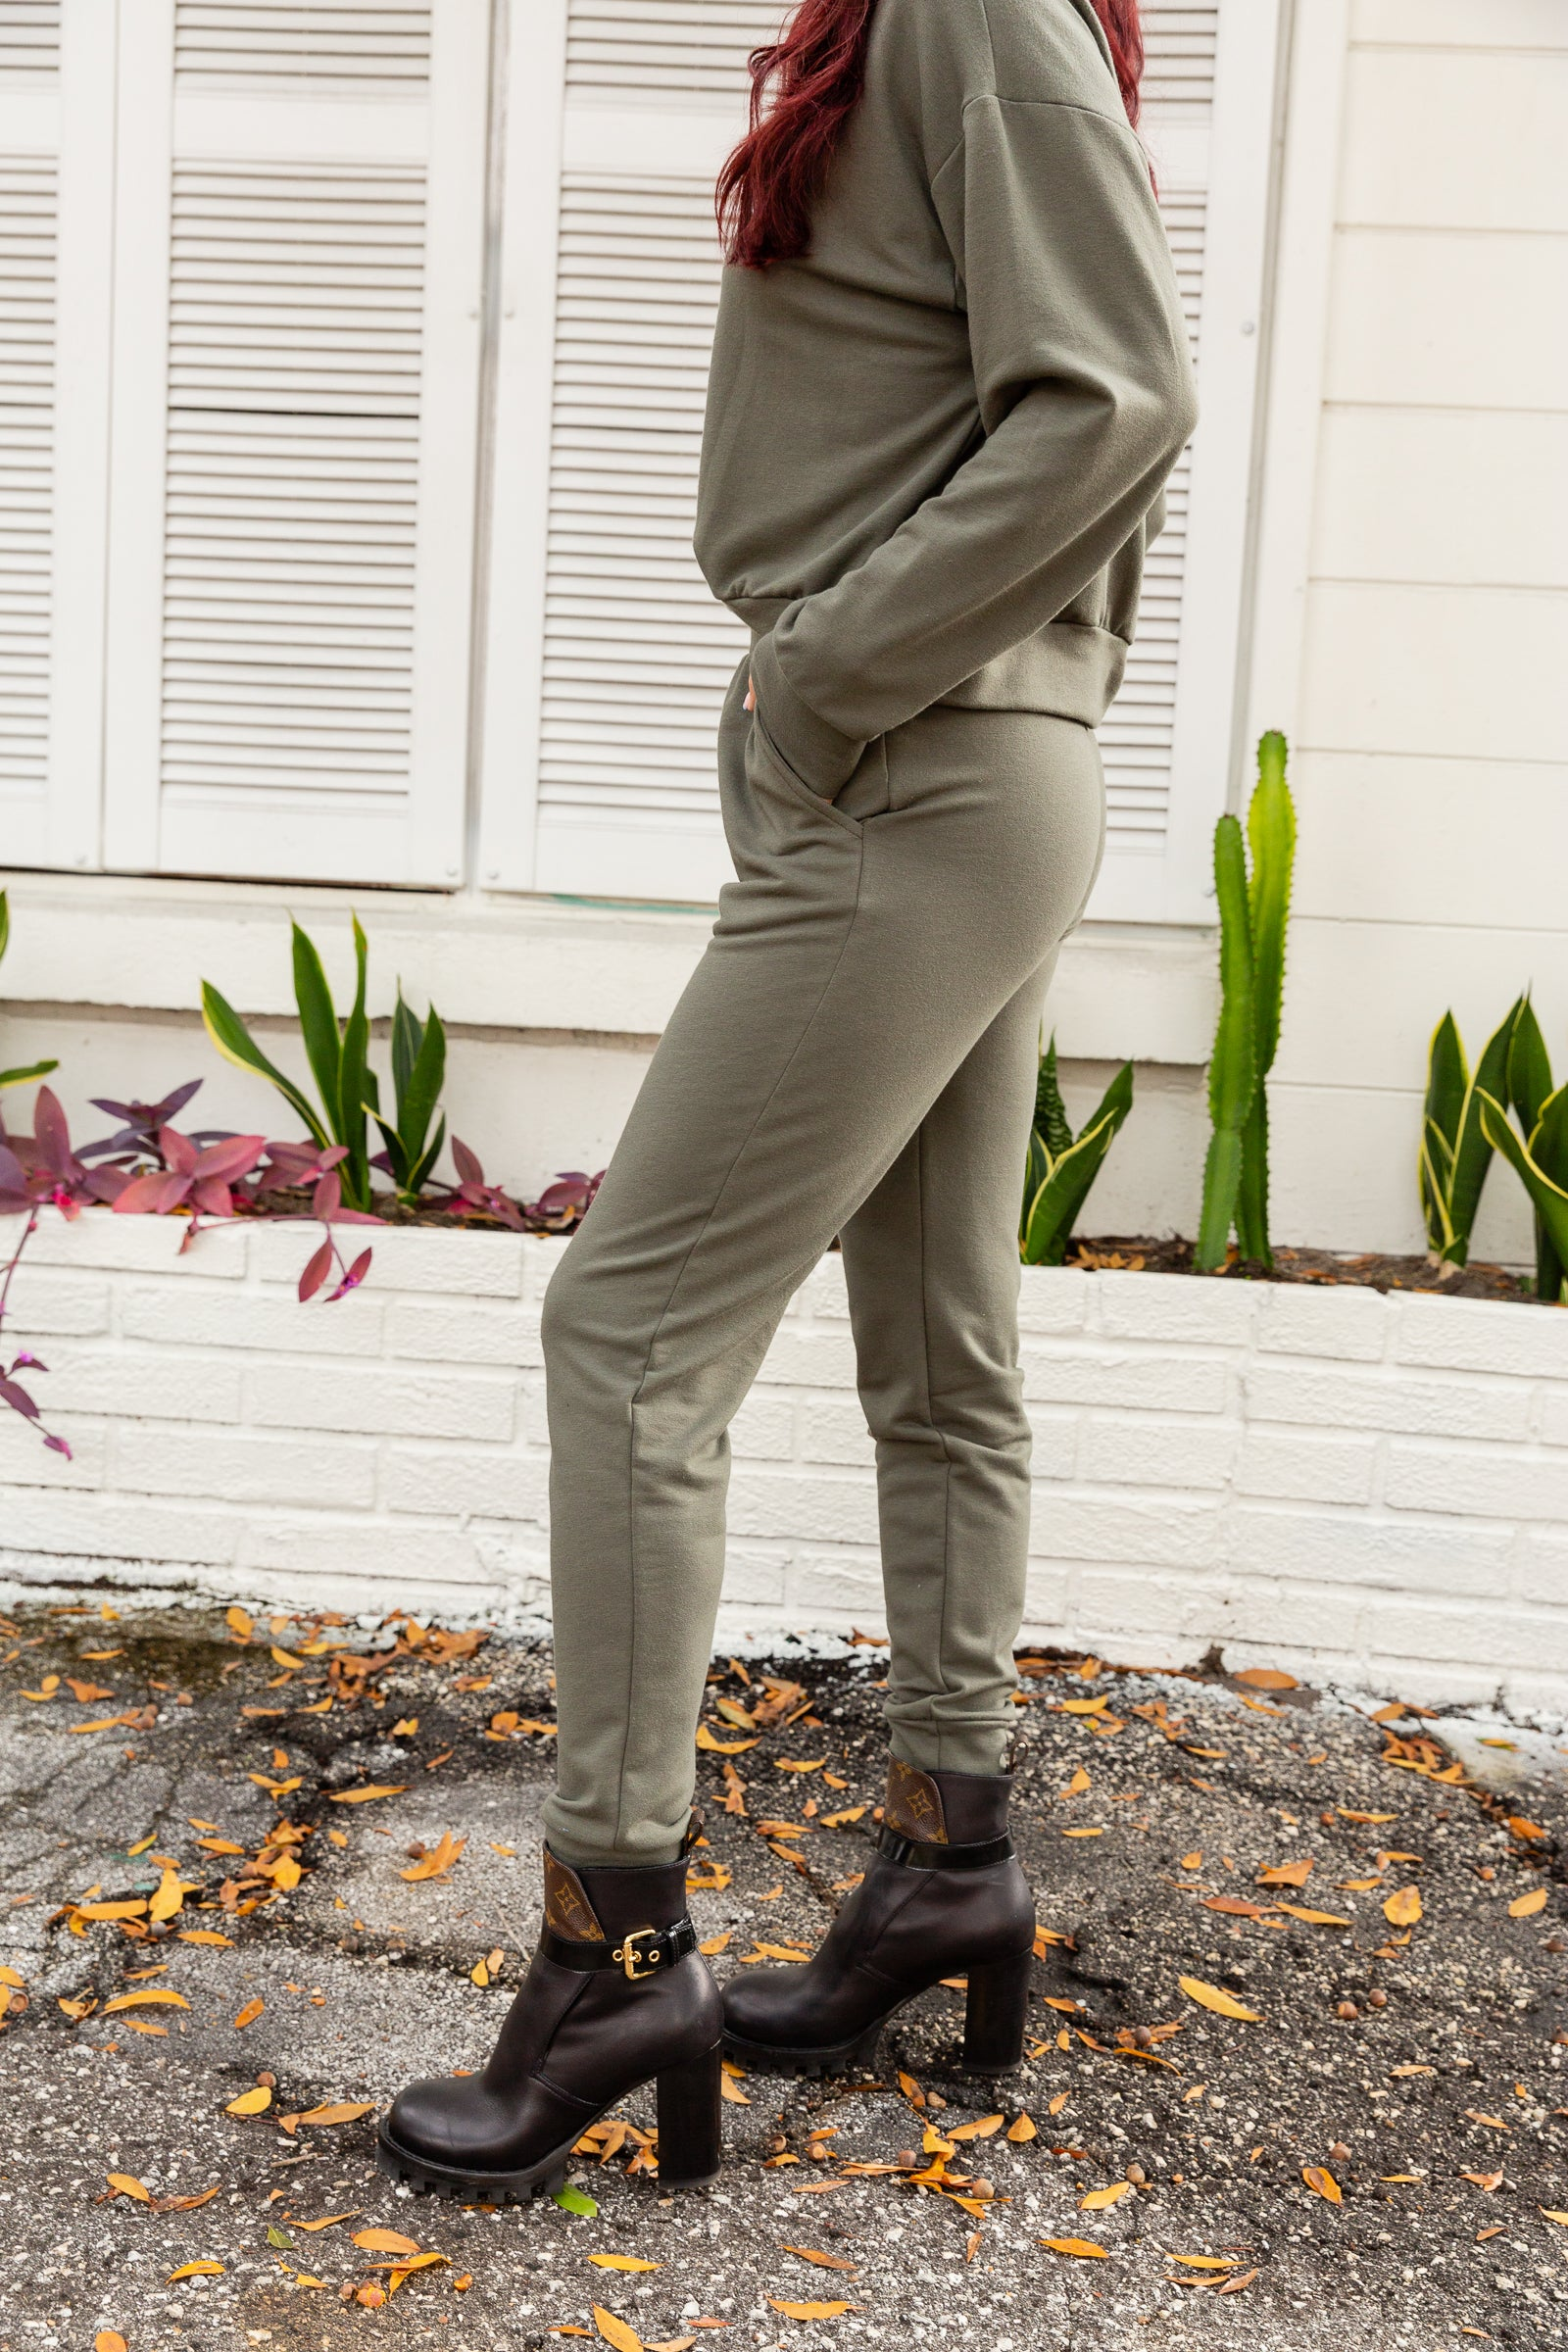 These comfy joggers have an elastic waistband leading into relaxed-fit pants with side pockets and tapering into skinny pant legs with an elastic ankle cuff.